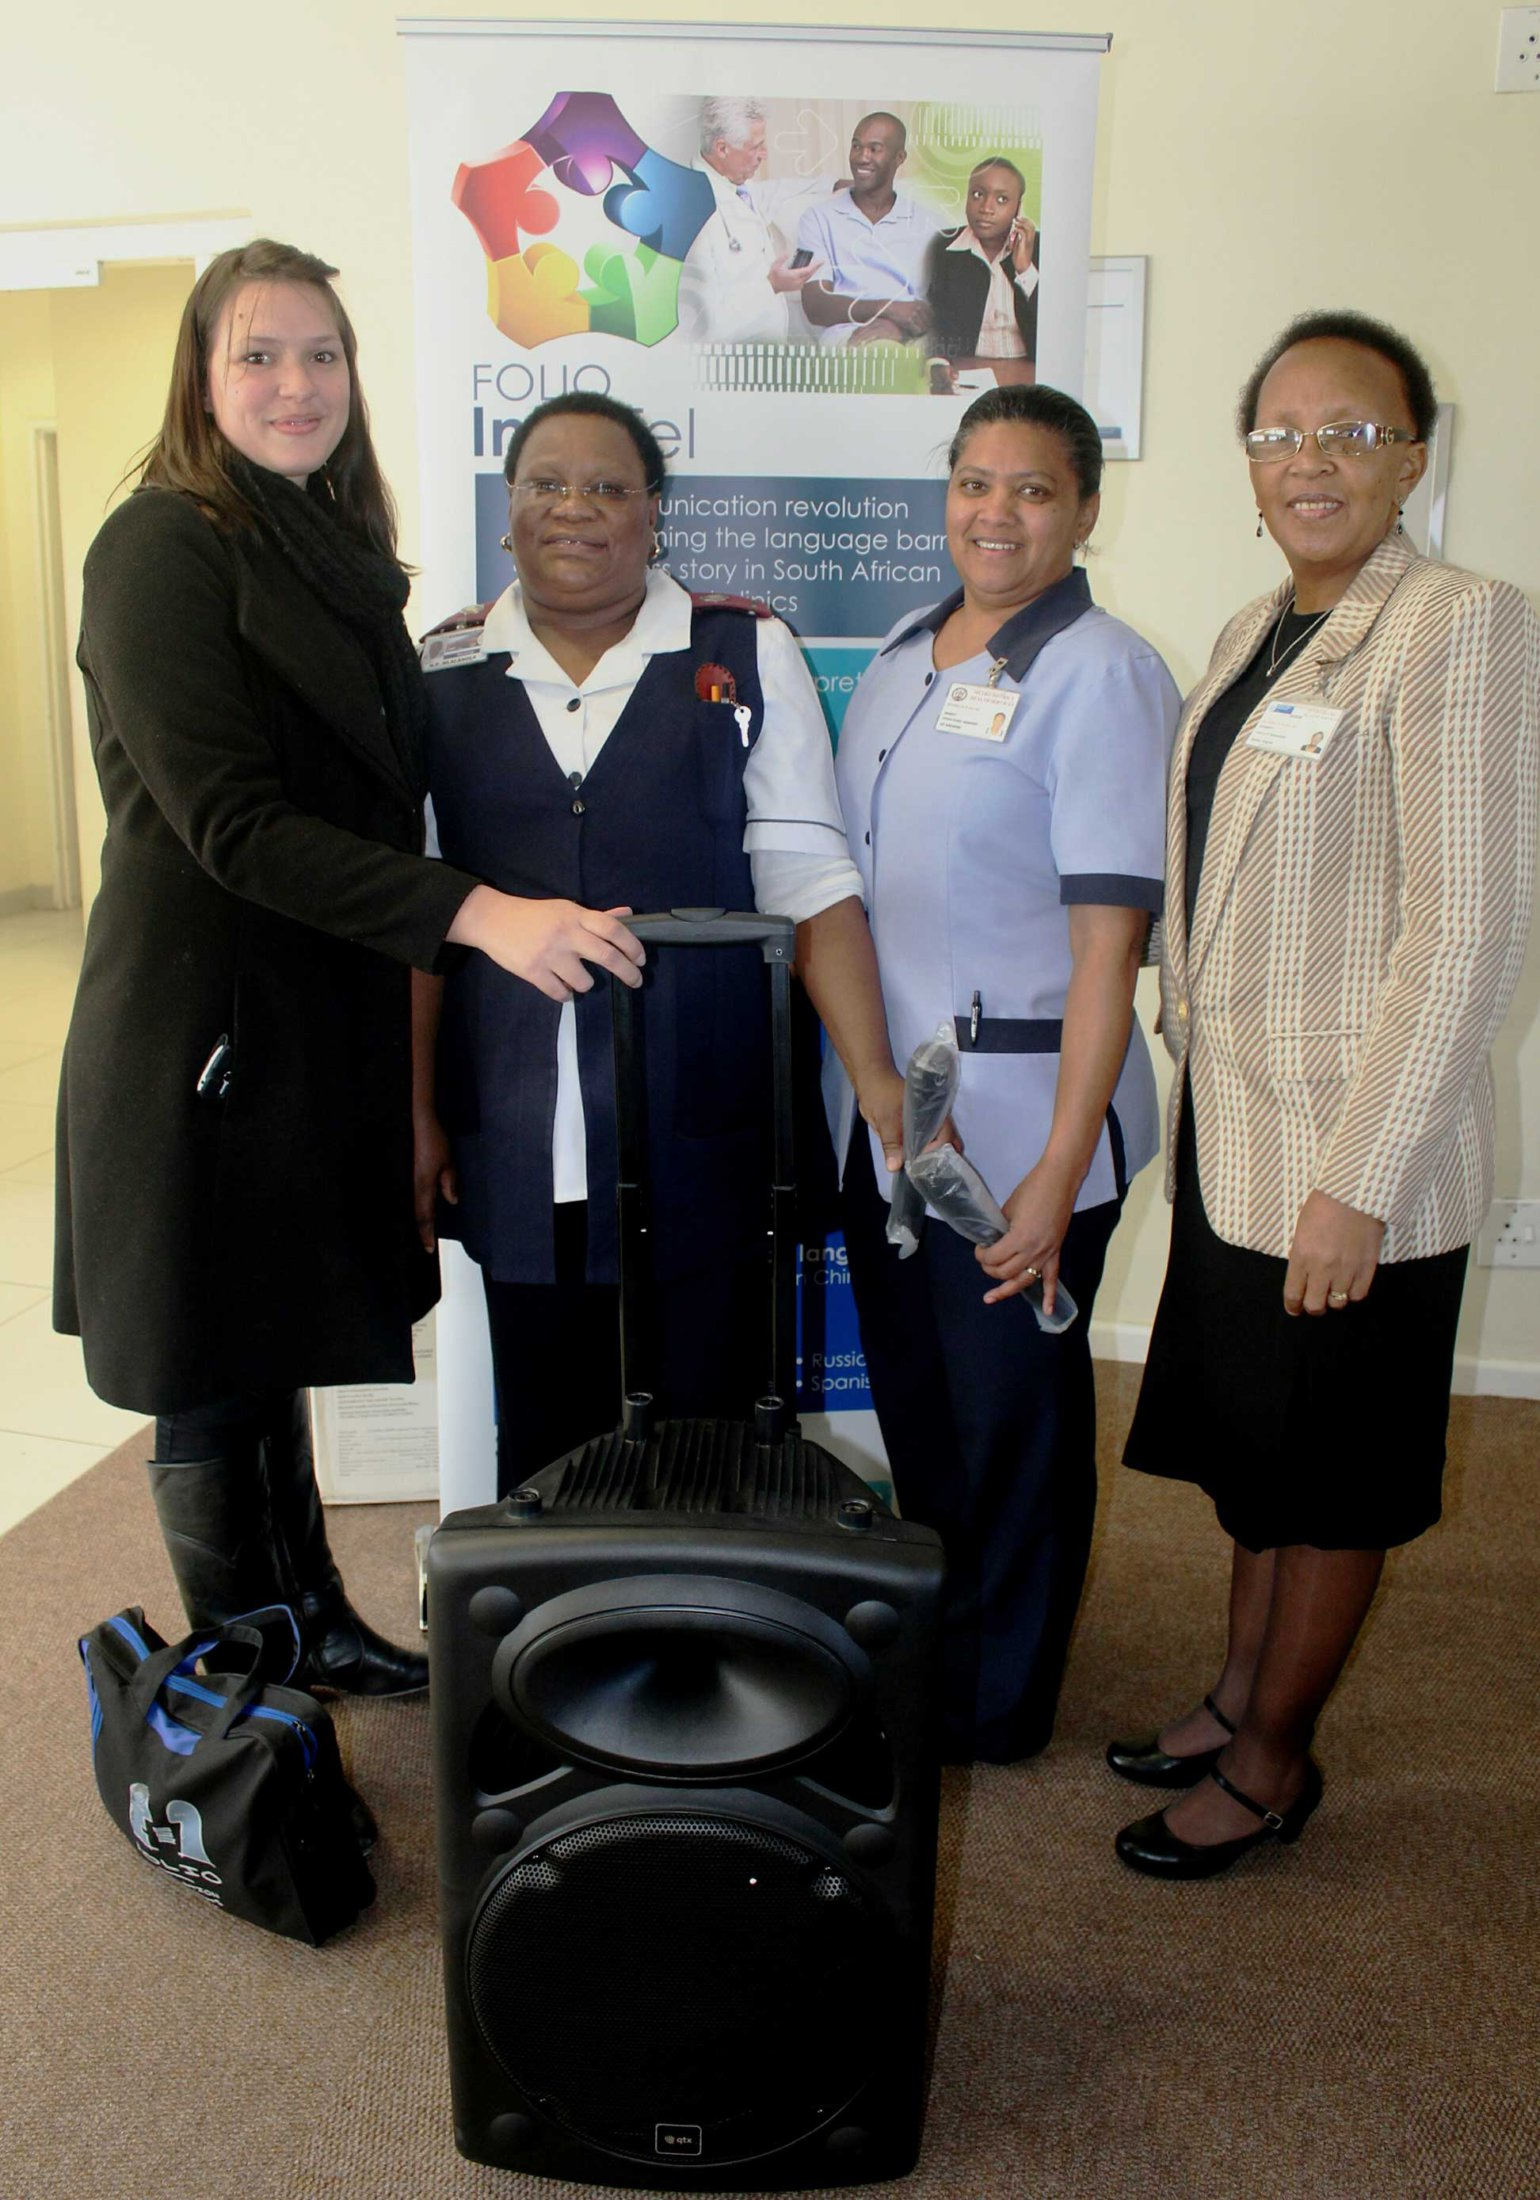 Staff members of Mitchells Plain CHC with their prize, a portable PA system with cordless microphones, presented to them by Folio InterTel's Lauri King. 23.06 16.